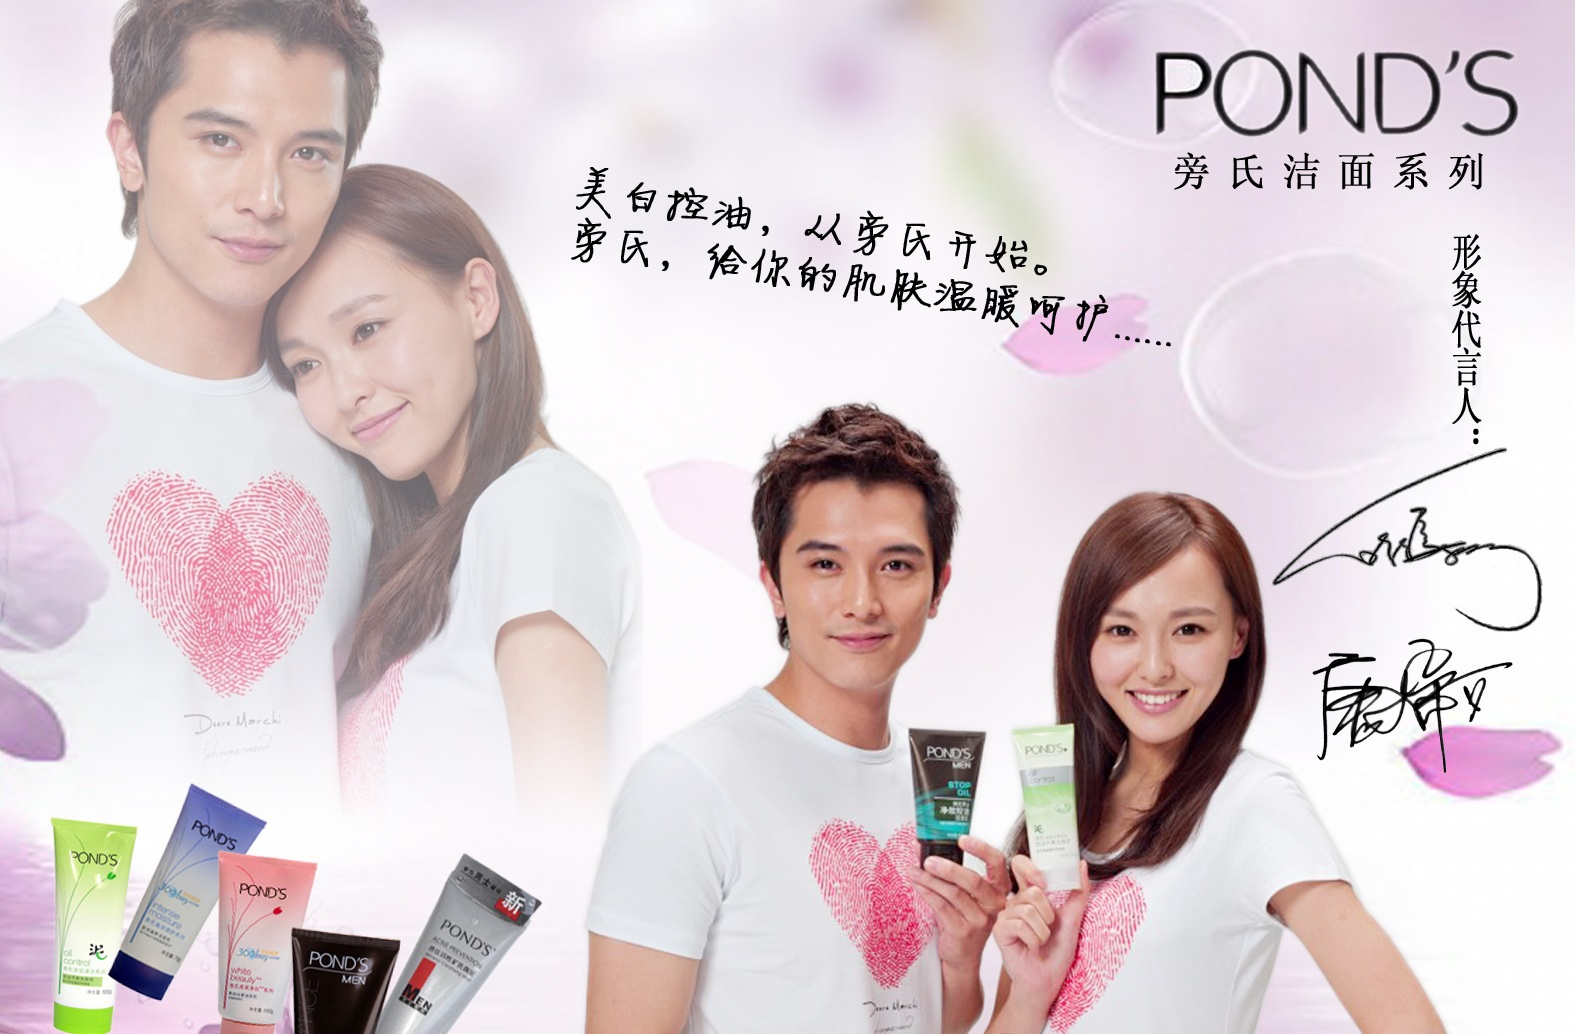 Ponds celebrates the Chinese Valentine's Day